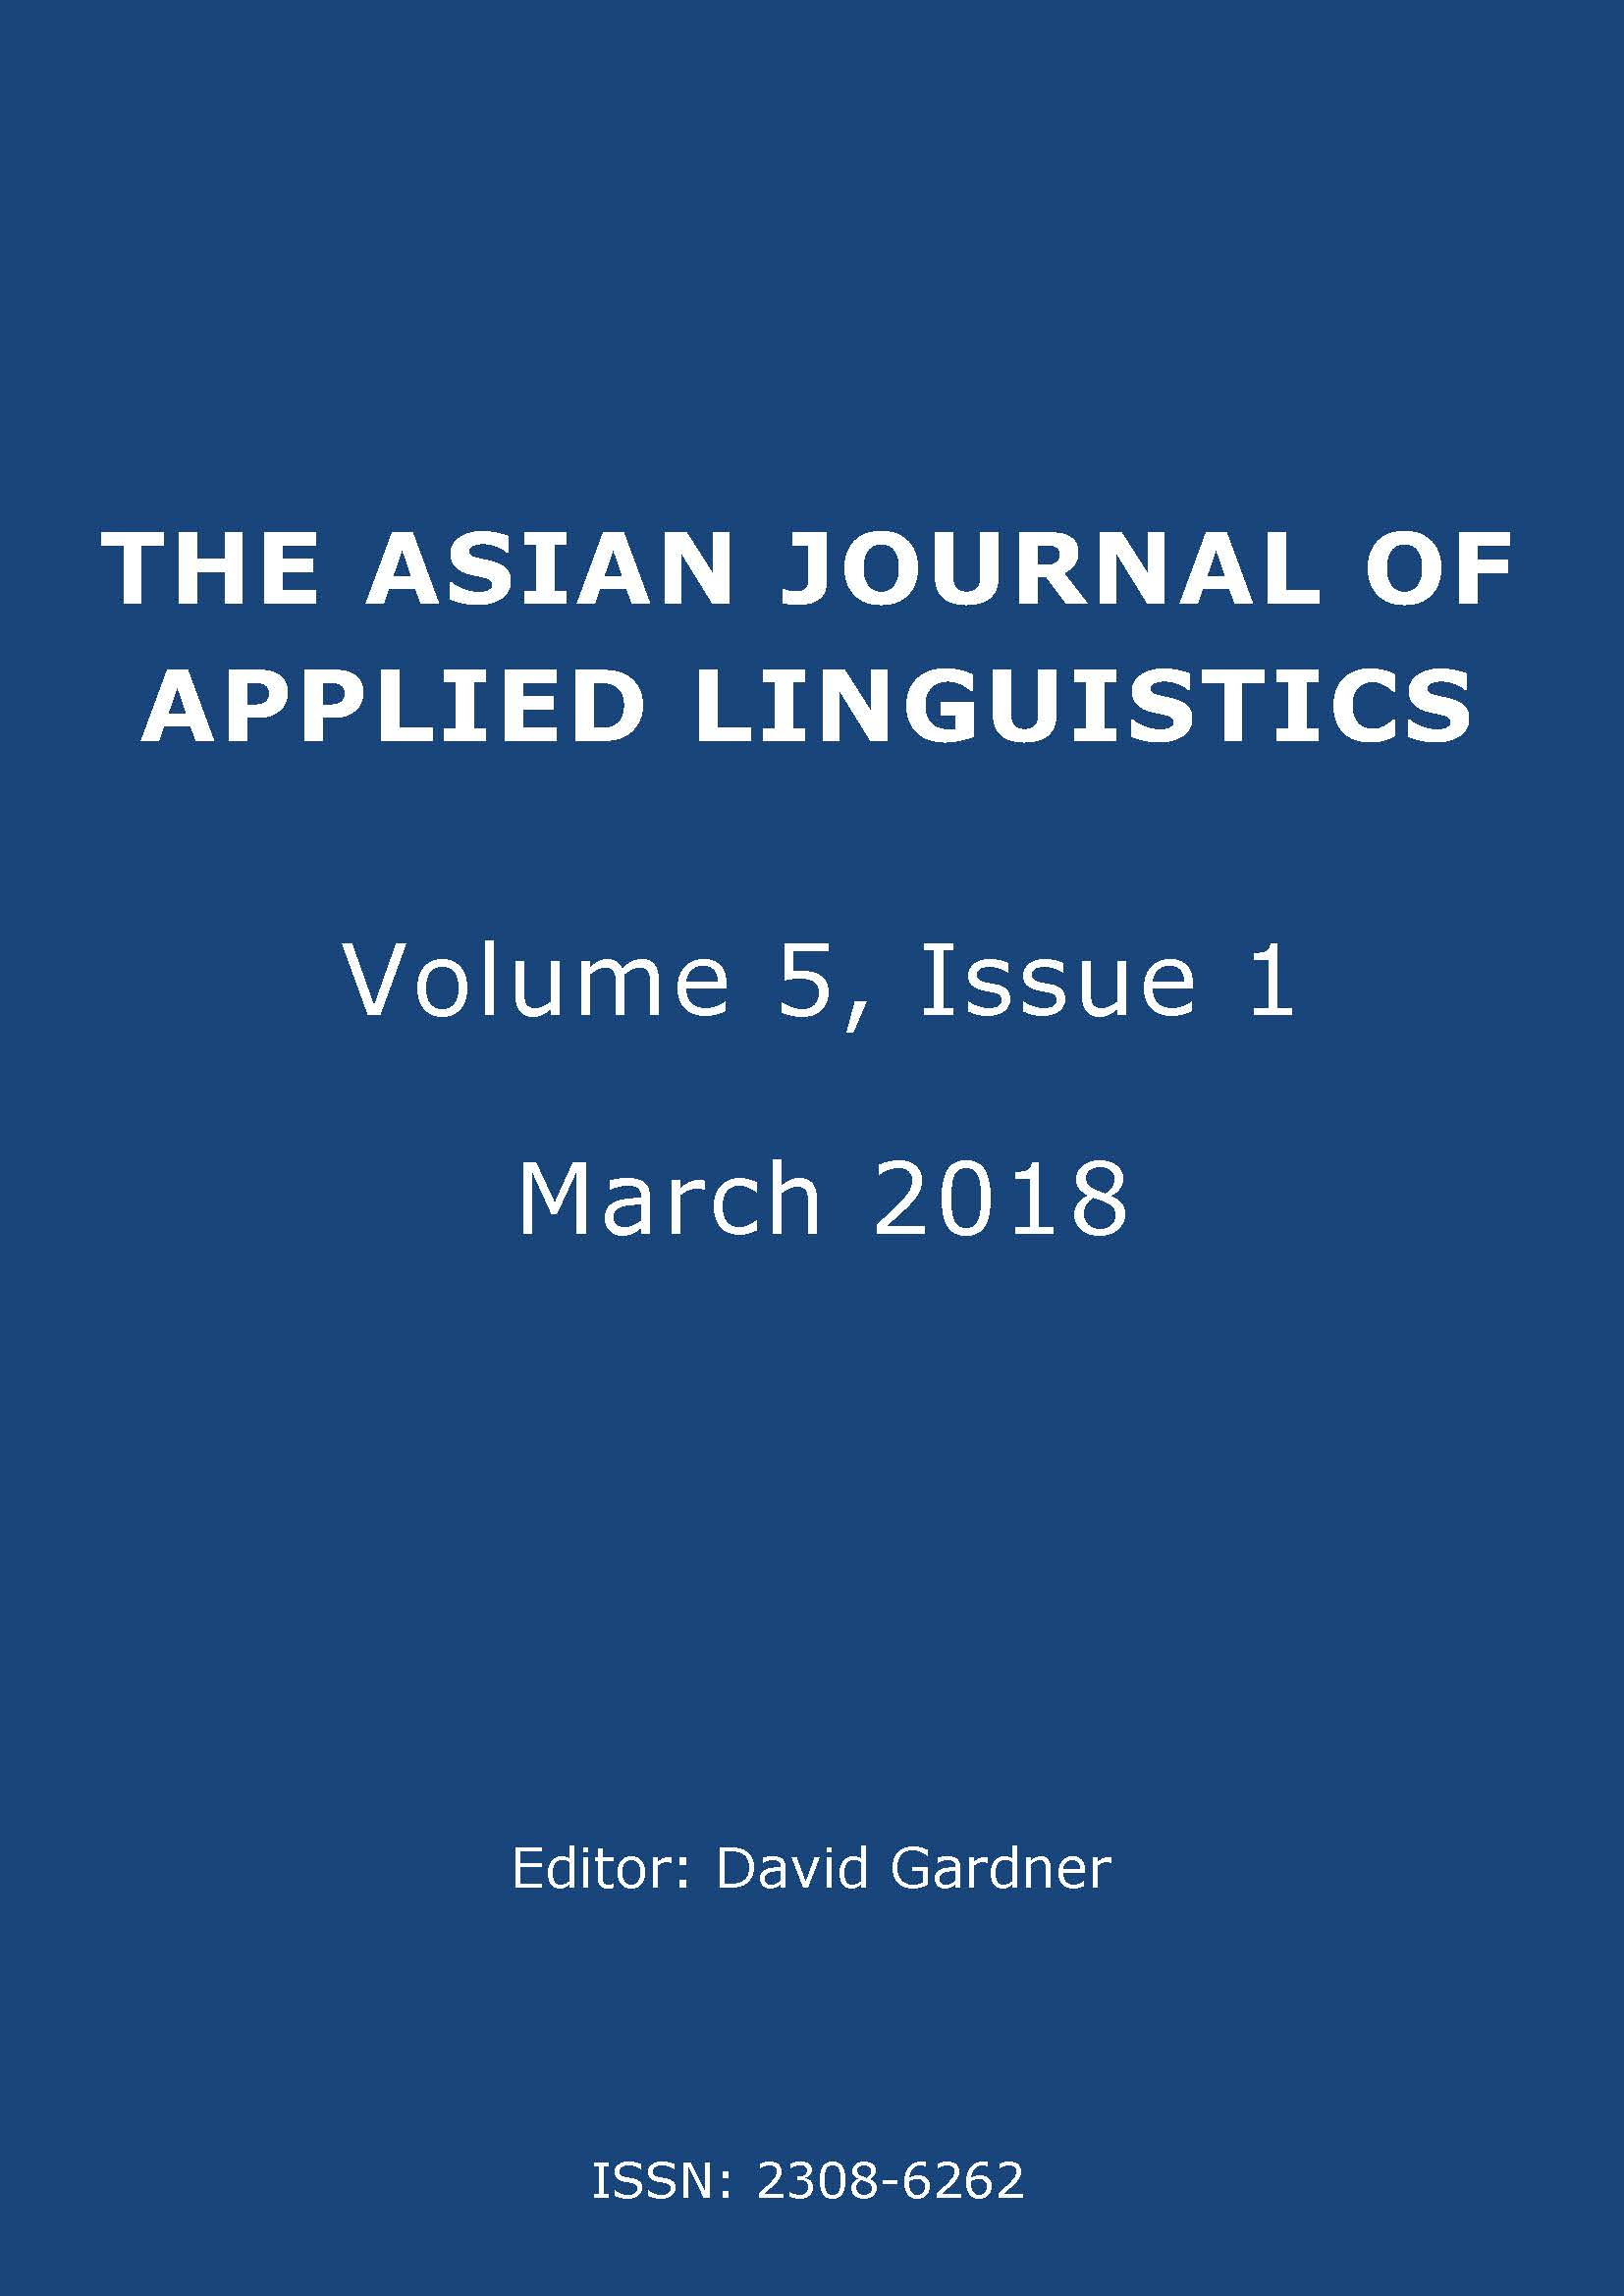 The Asian Journal of Applied Linguistics. Volume 5, Issue 1.